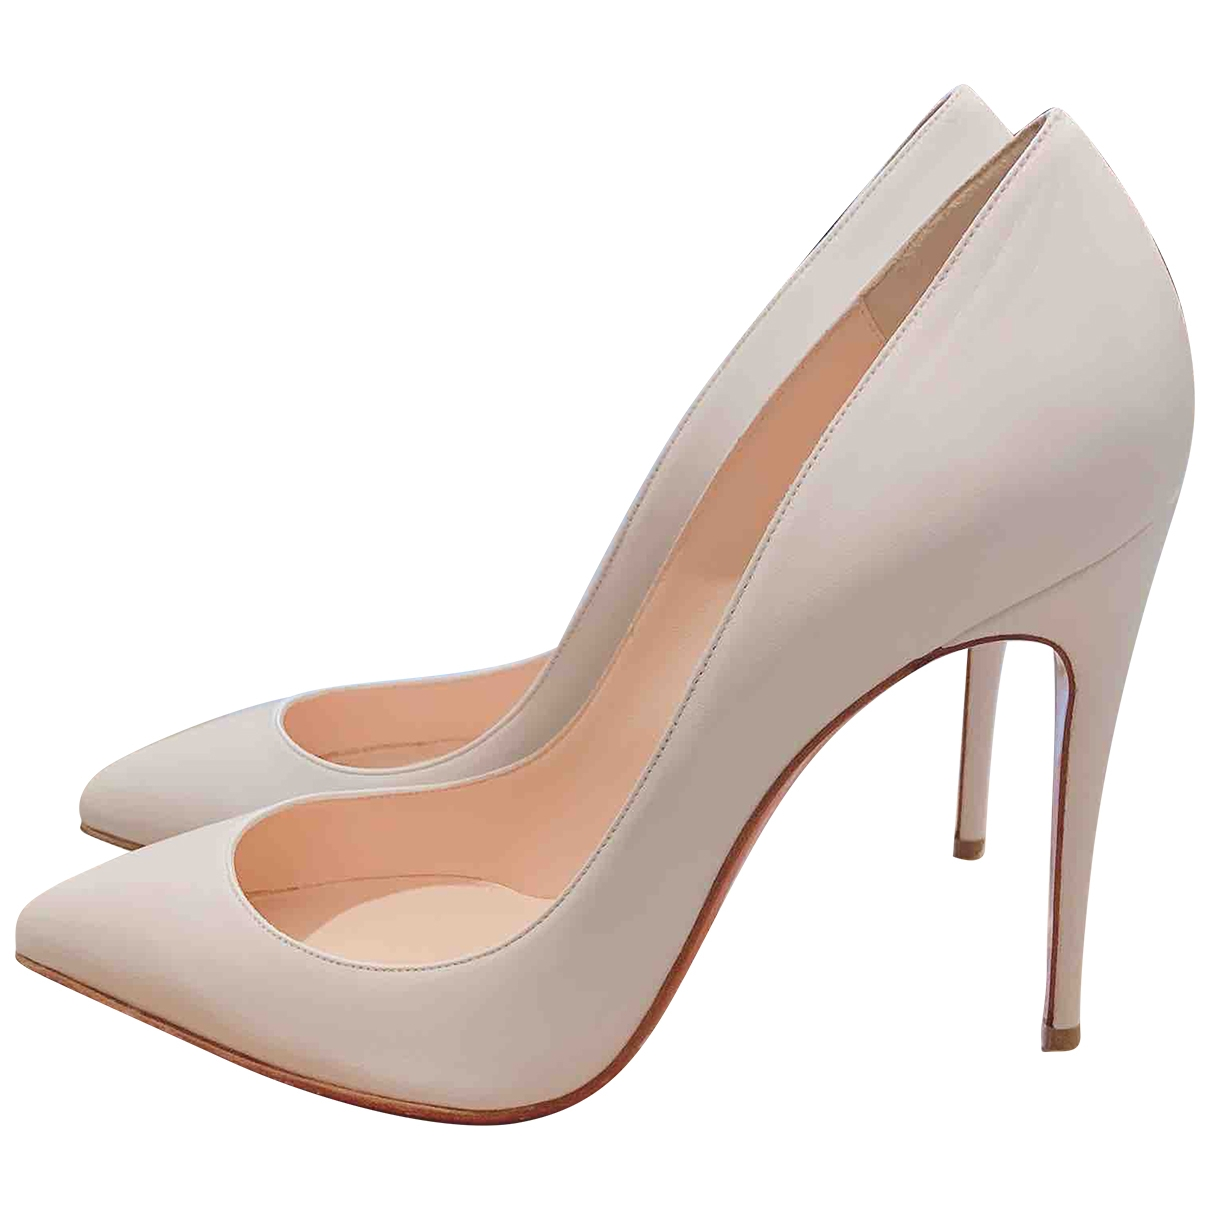 Christian Louboutin Pigalle White Leather Heels for Women 40 EU